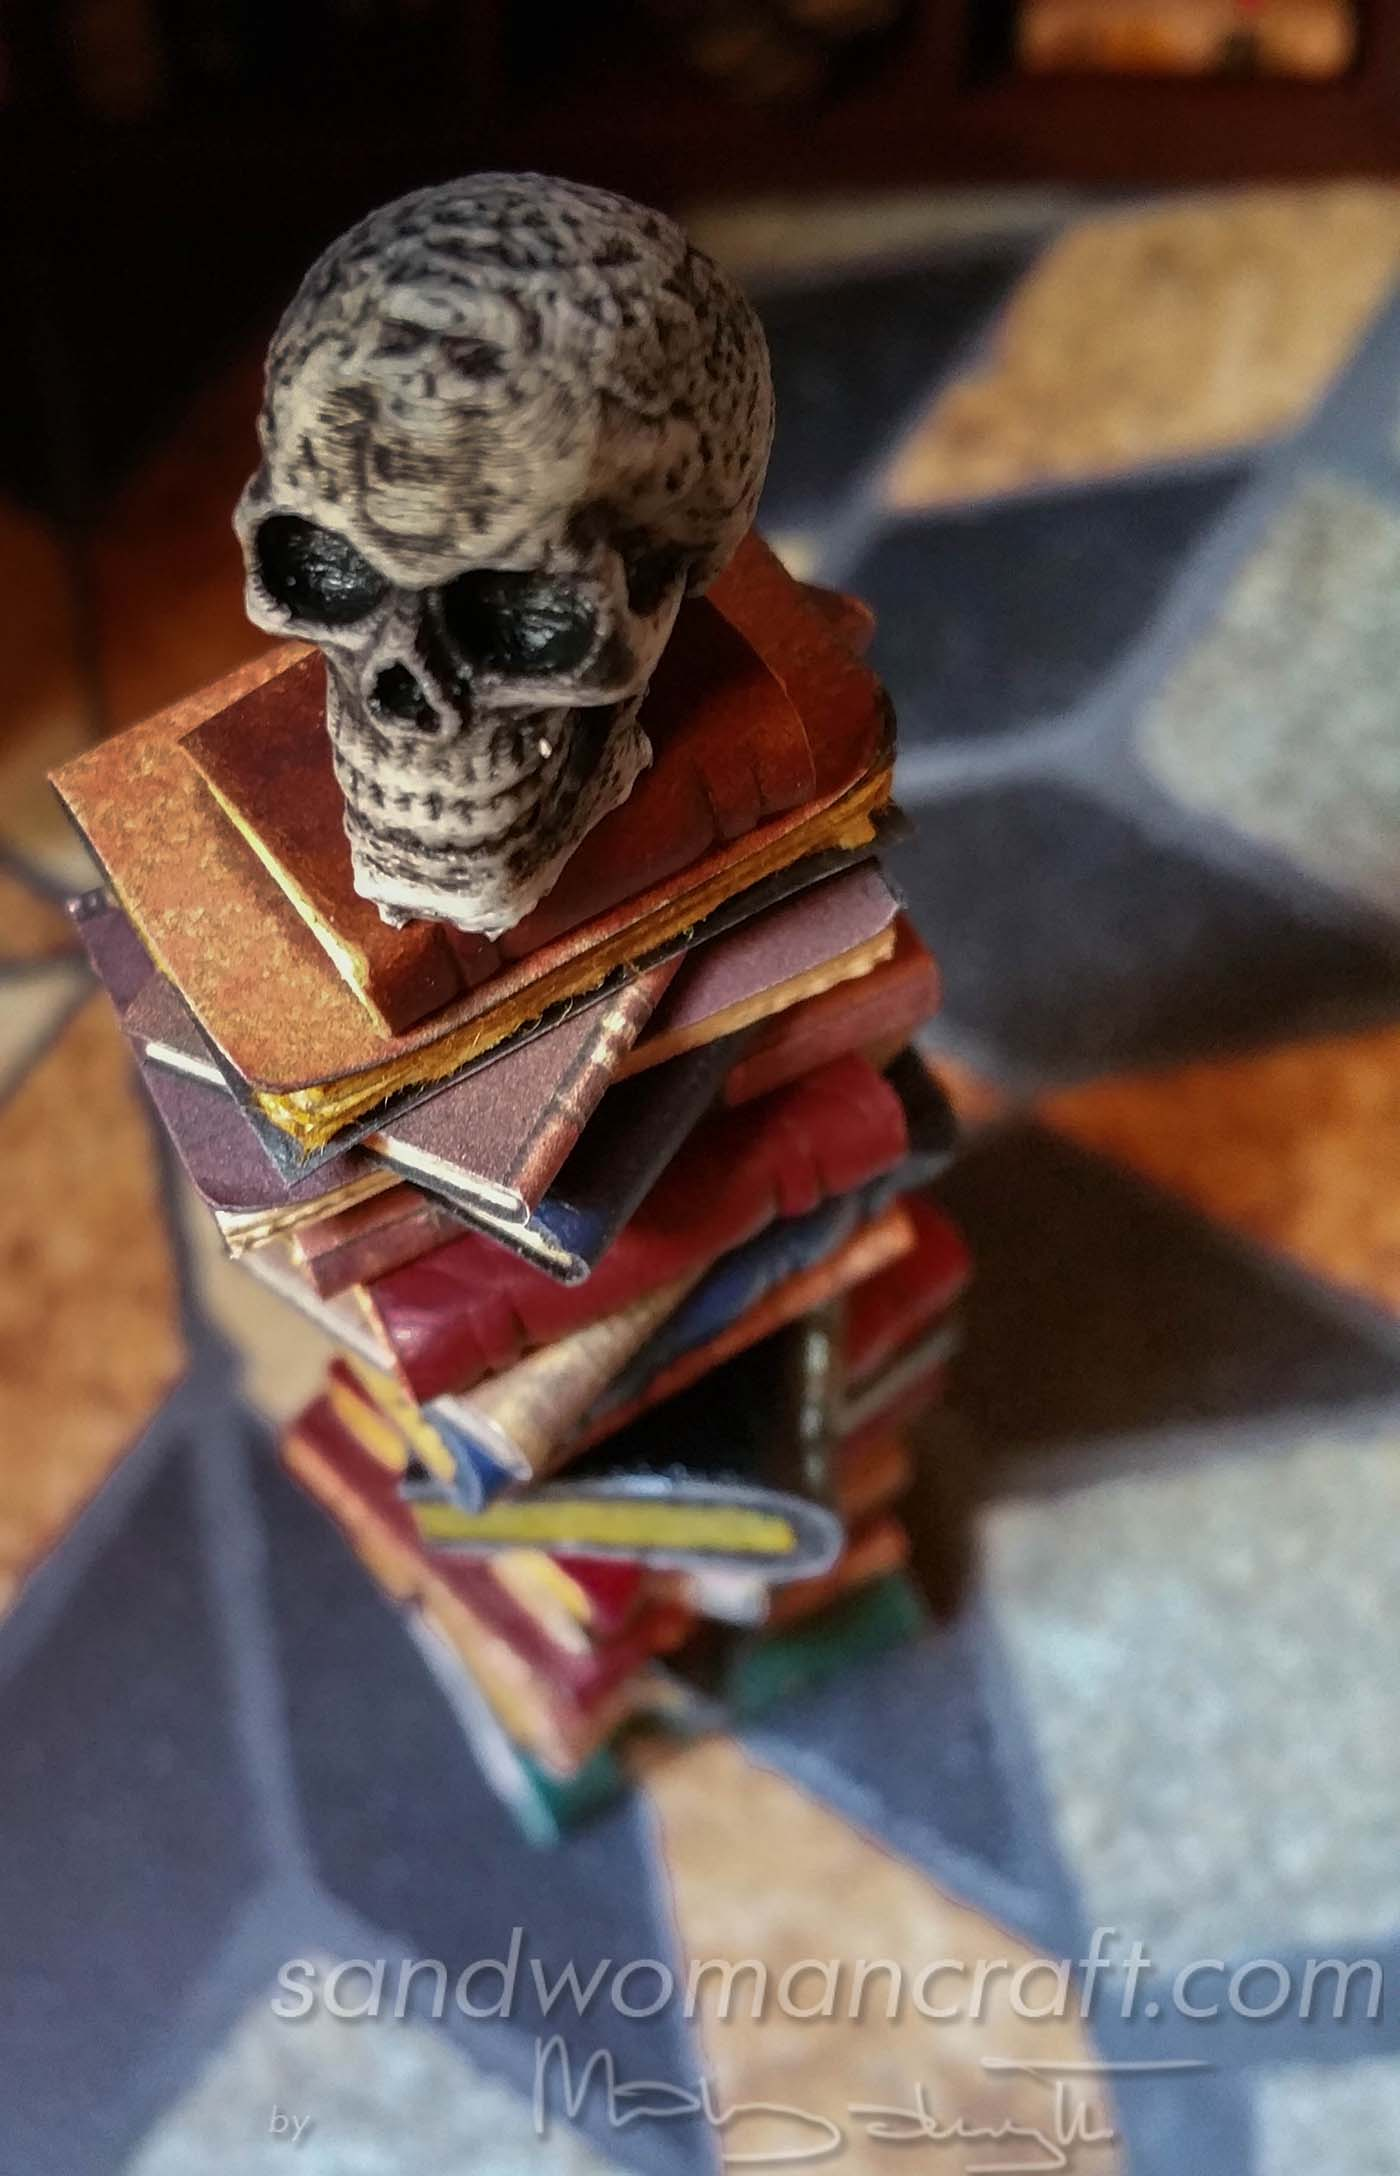 Miniature book stack with Celtic Skull